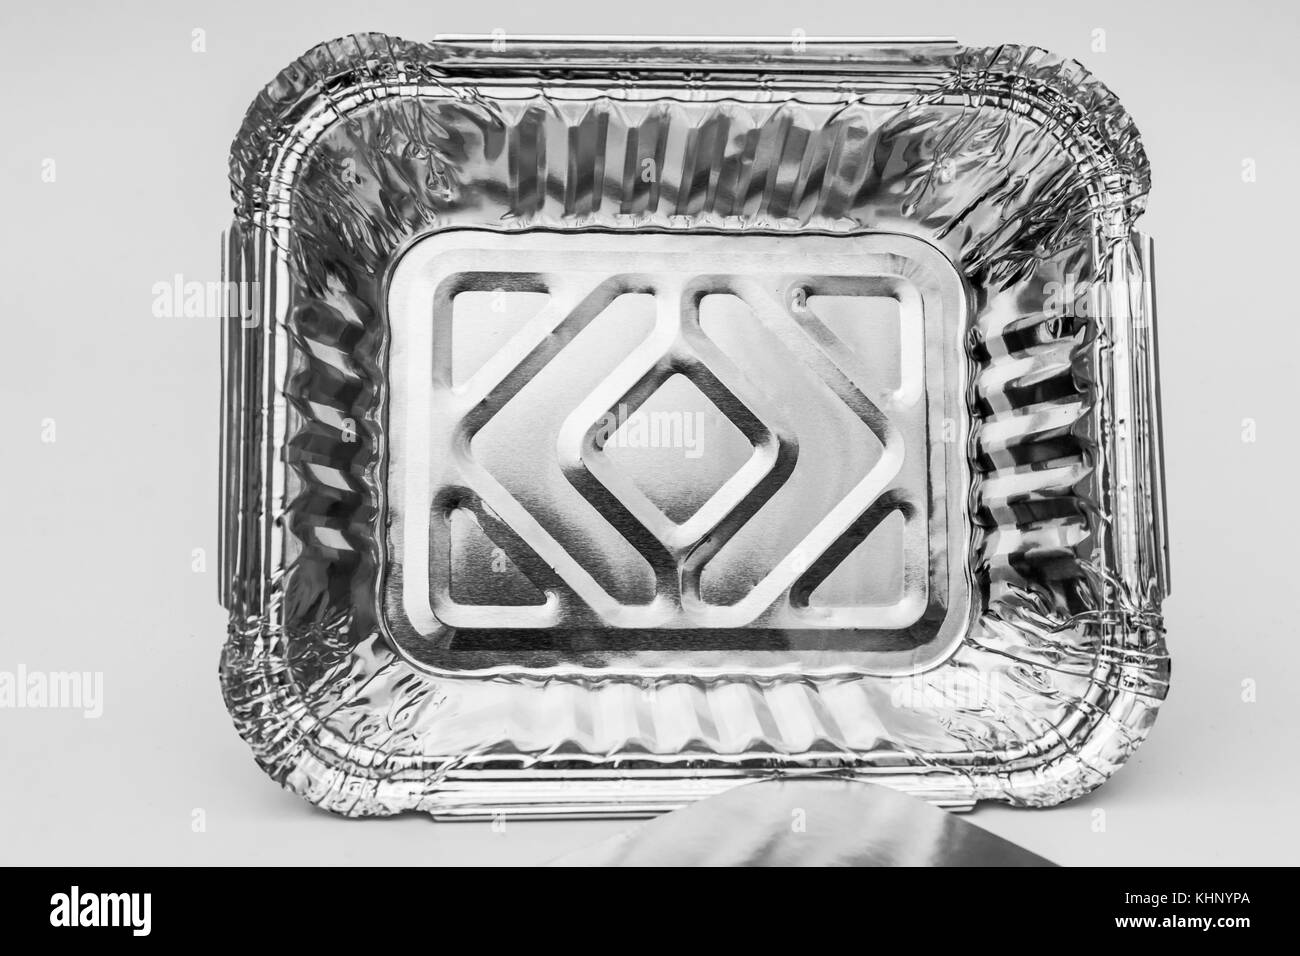 A view of a Tin Foil Dish as used for catering and in  kitchens for storing and cooking food - Stock Image